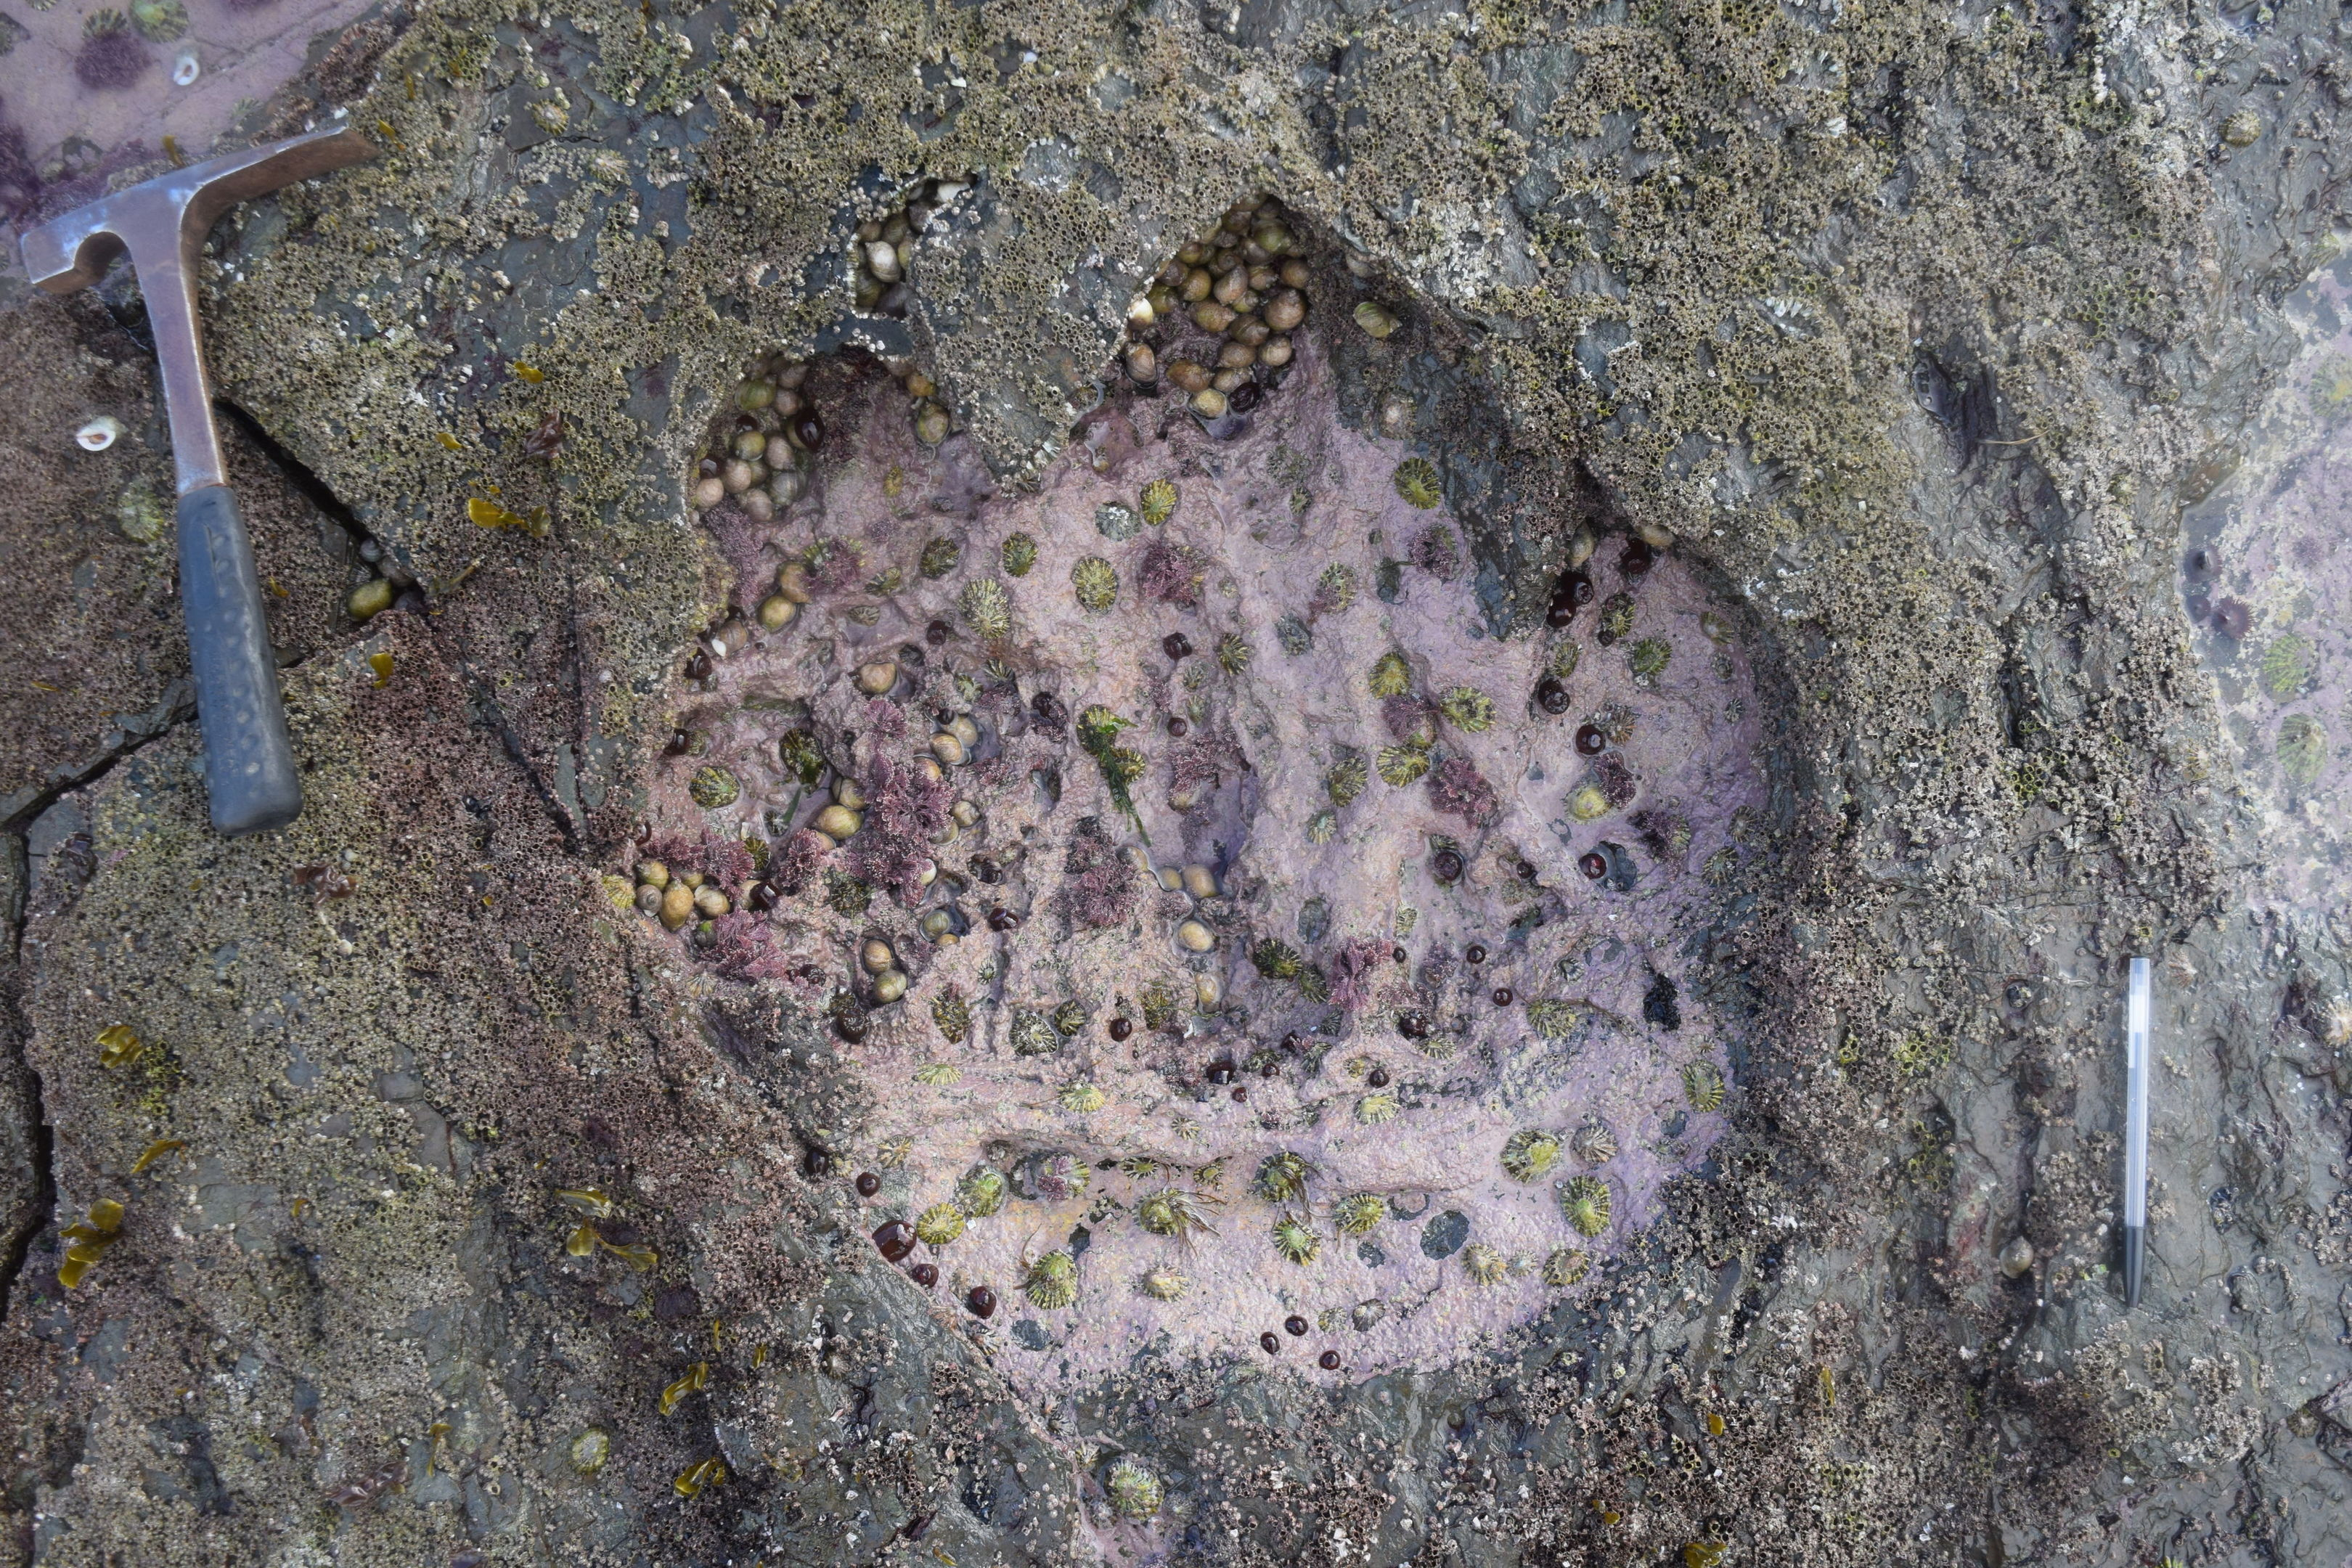 Photo of a footprint made by sauropod dinosaur, found on the Isle of Syke in Scotland.